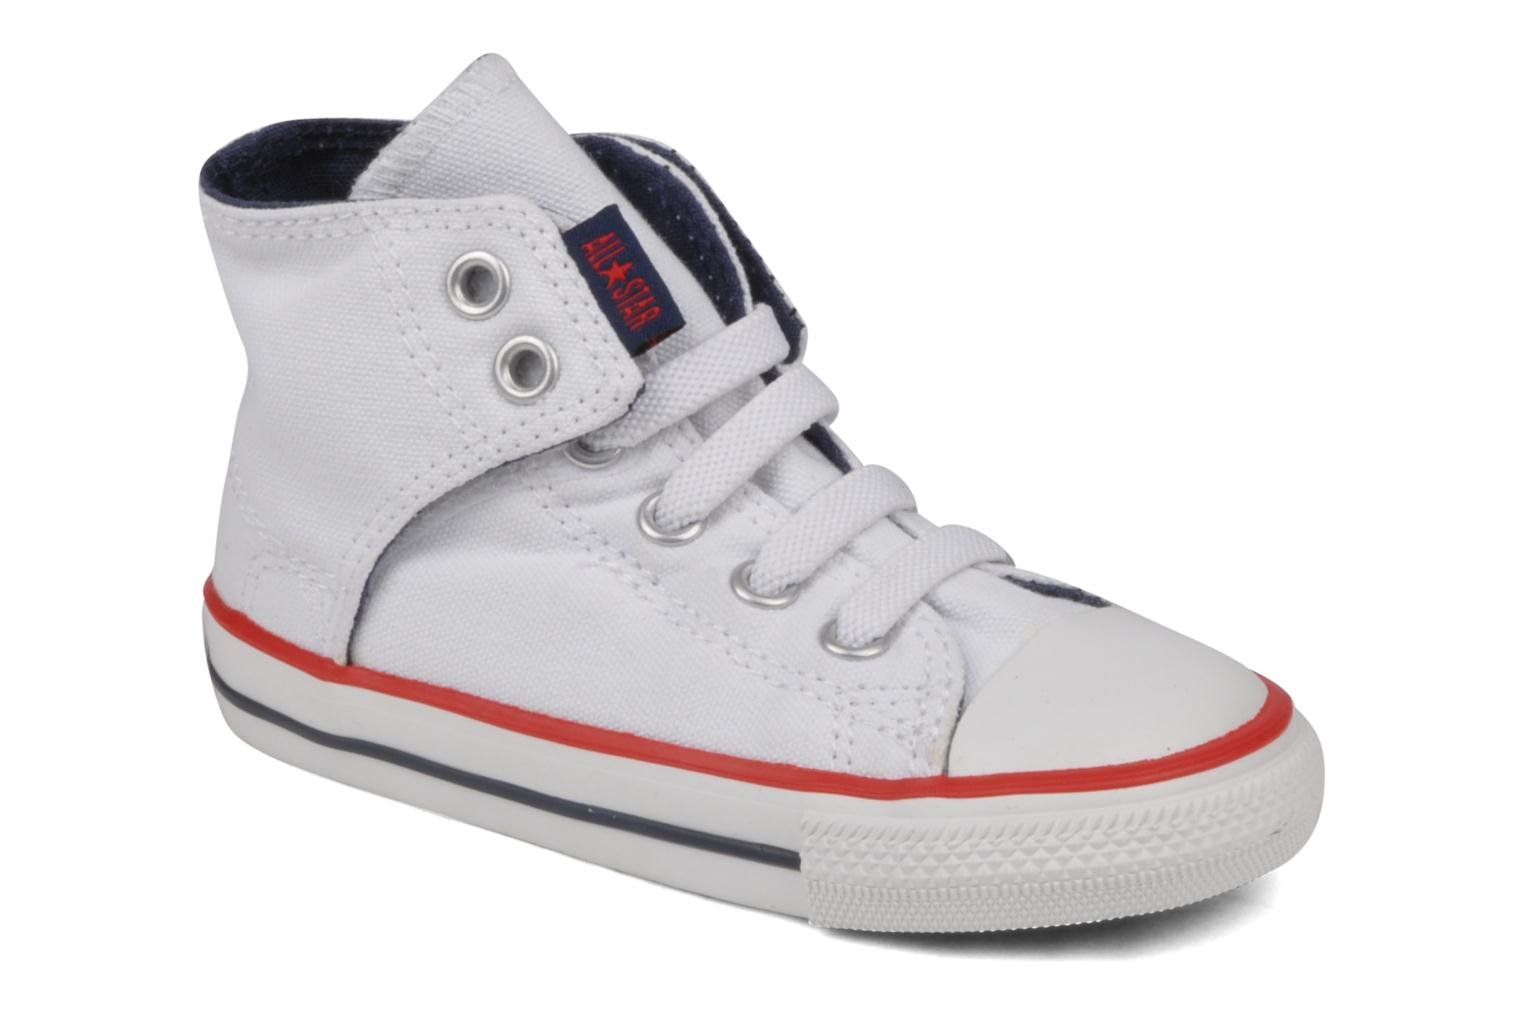 Chuck taylor all star easy slip hi k by converse.